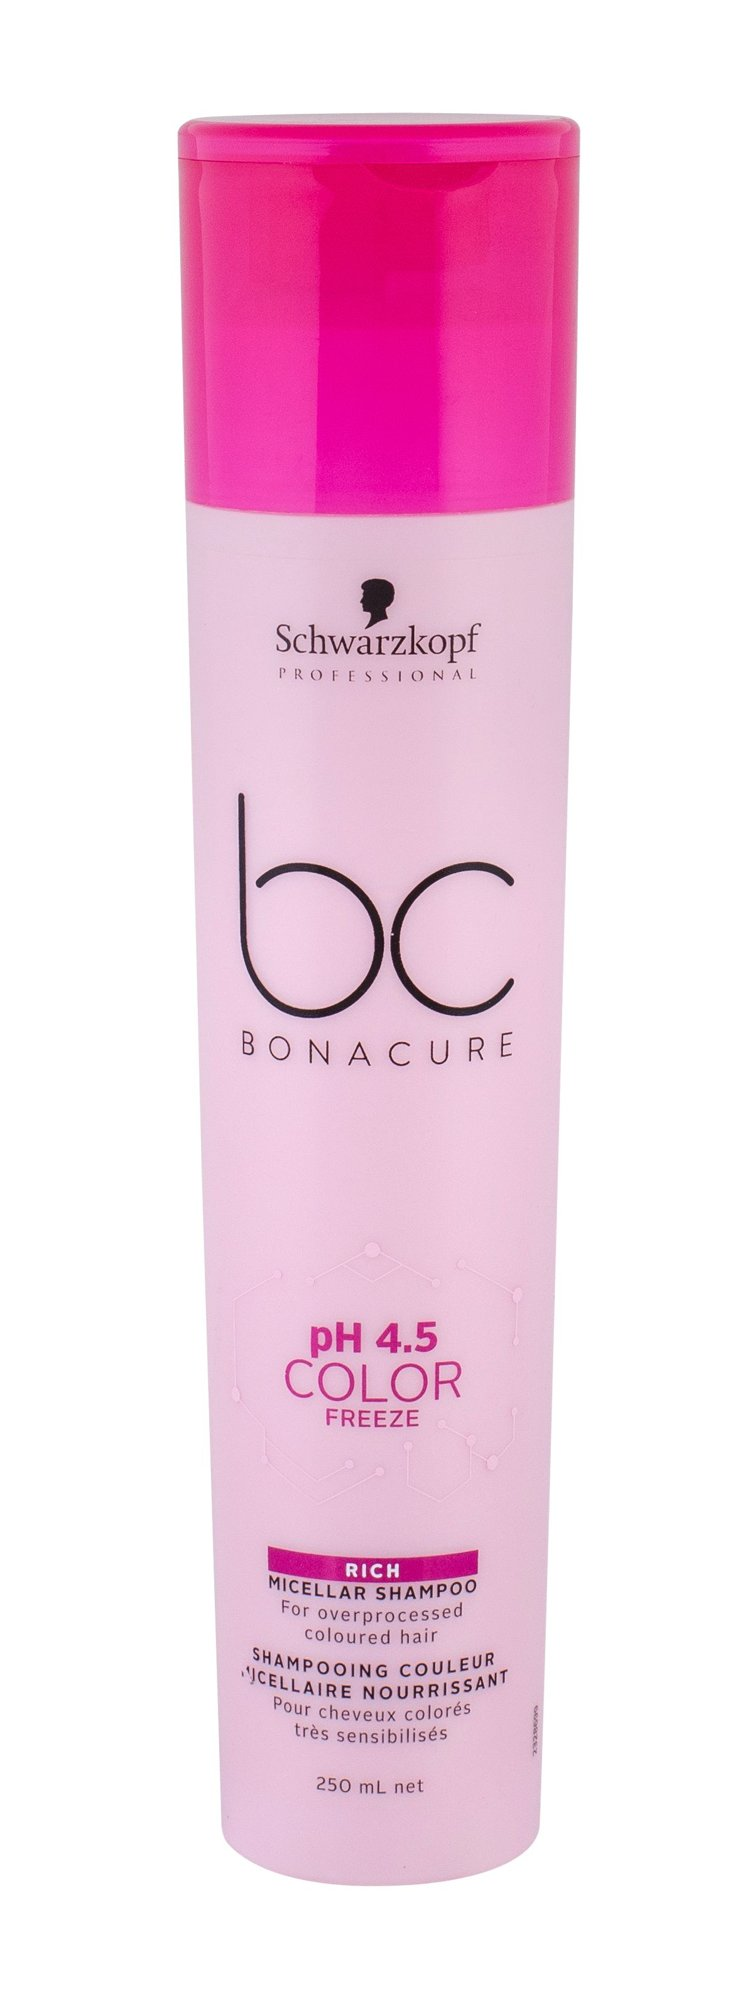 Šampūnas Schwarzkopf BC Bonacure pH 4.5 Color Freeze